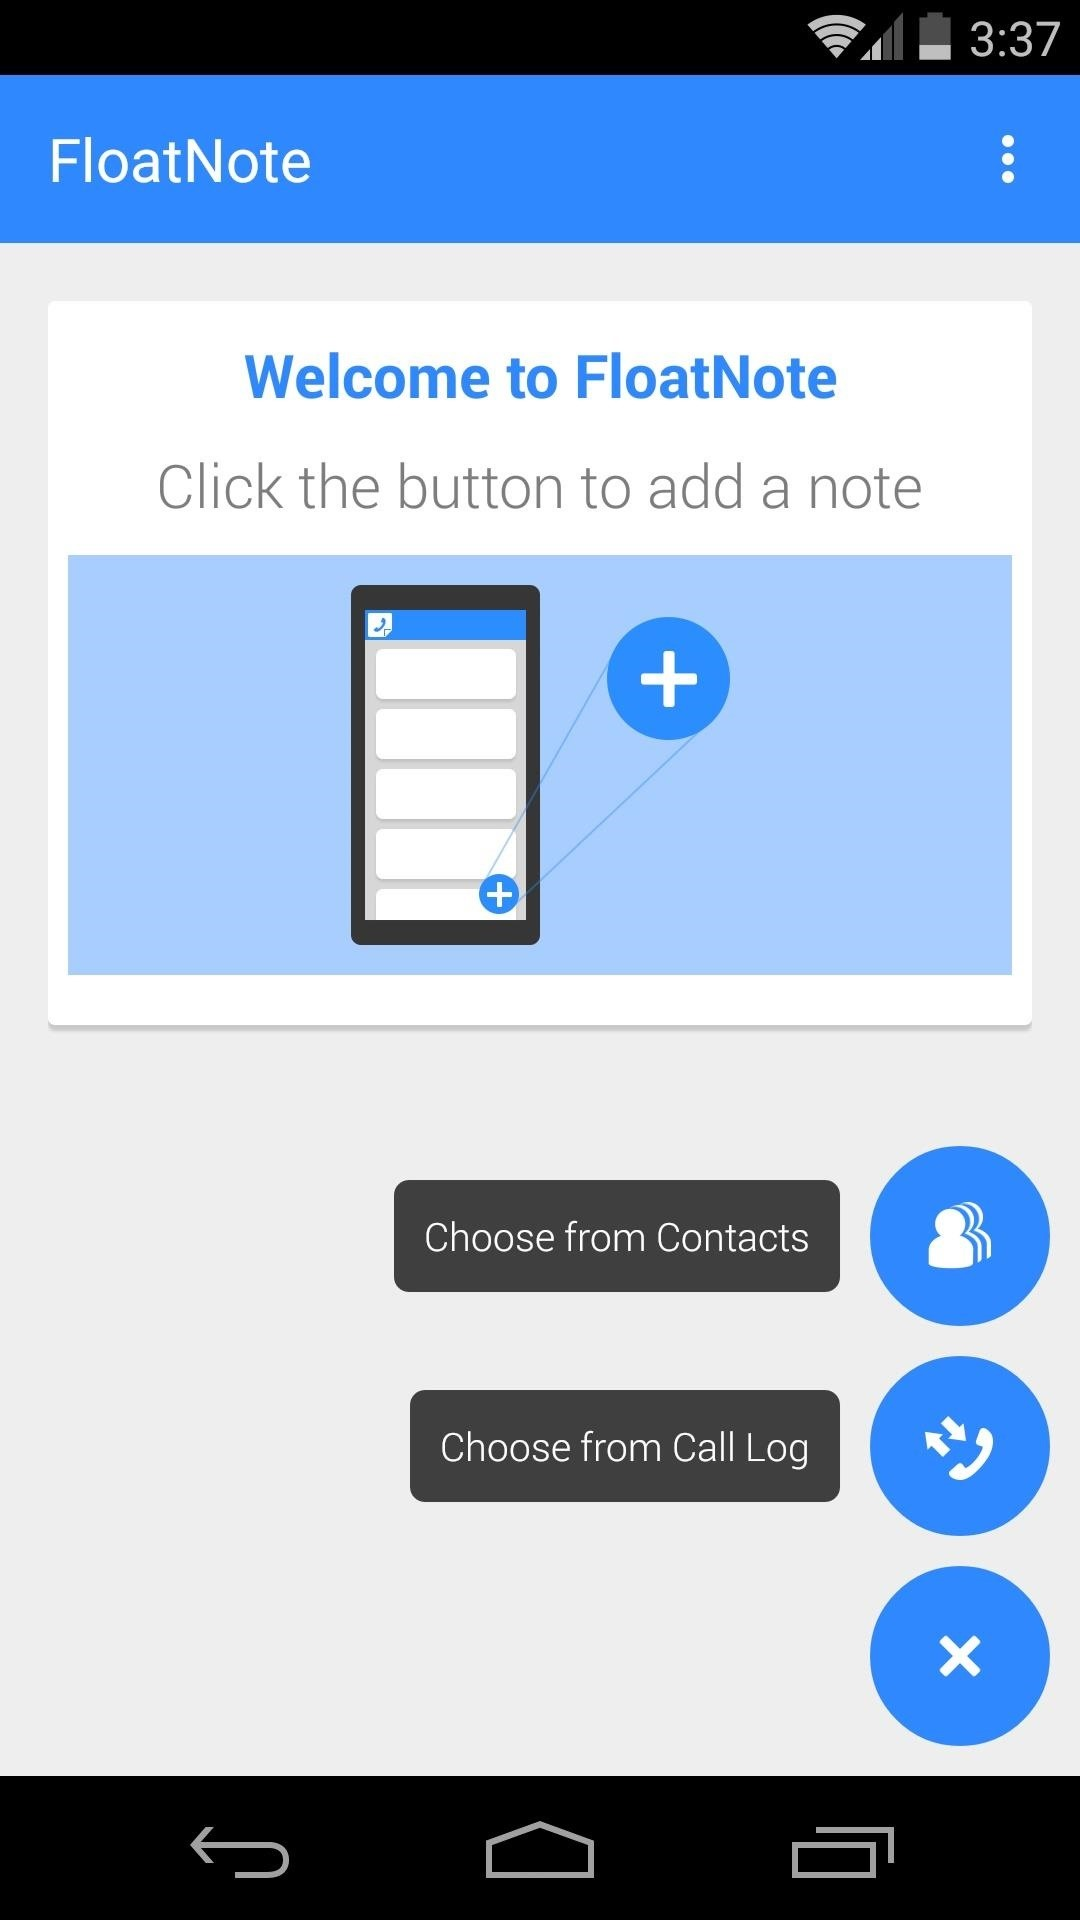 FloatNote Gives You Contact-Specific Popups That Remind You What to Talk About During Calls